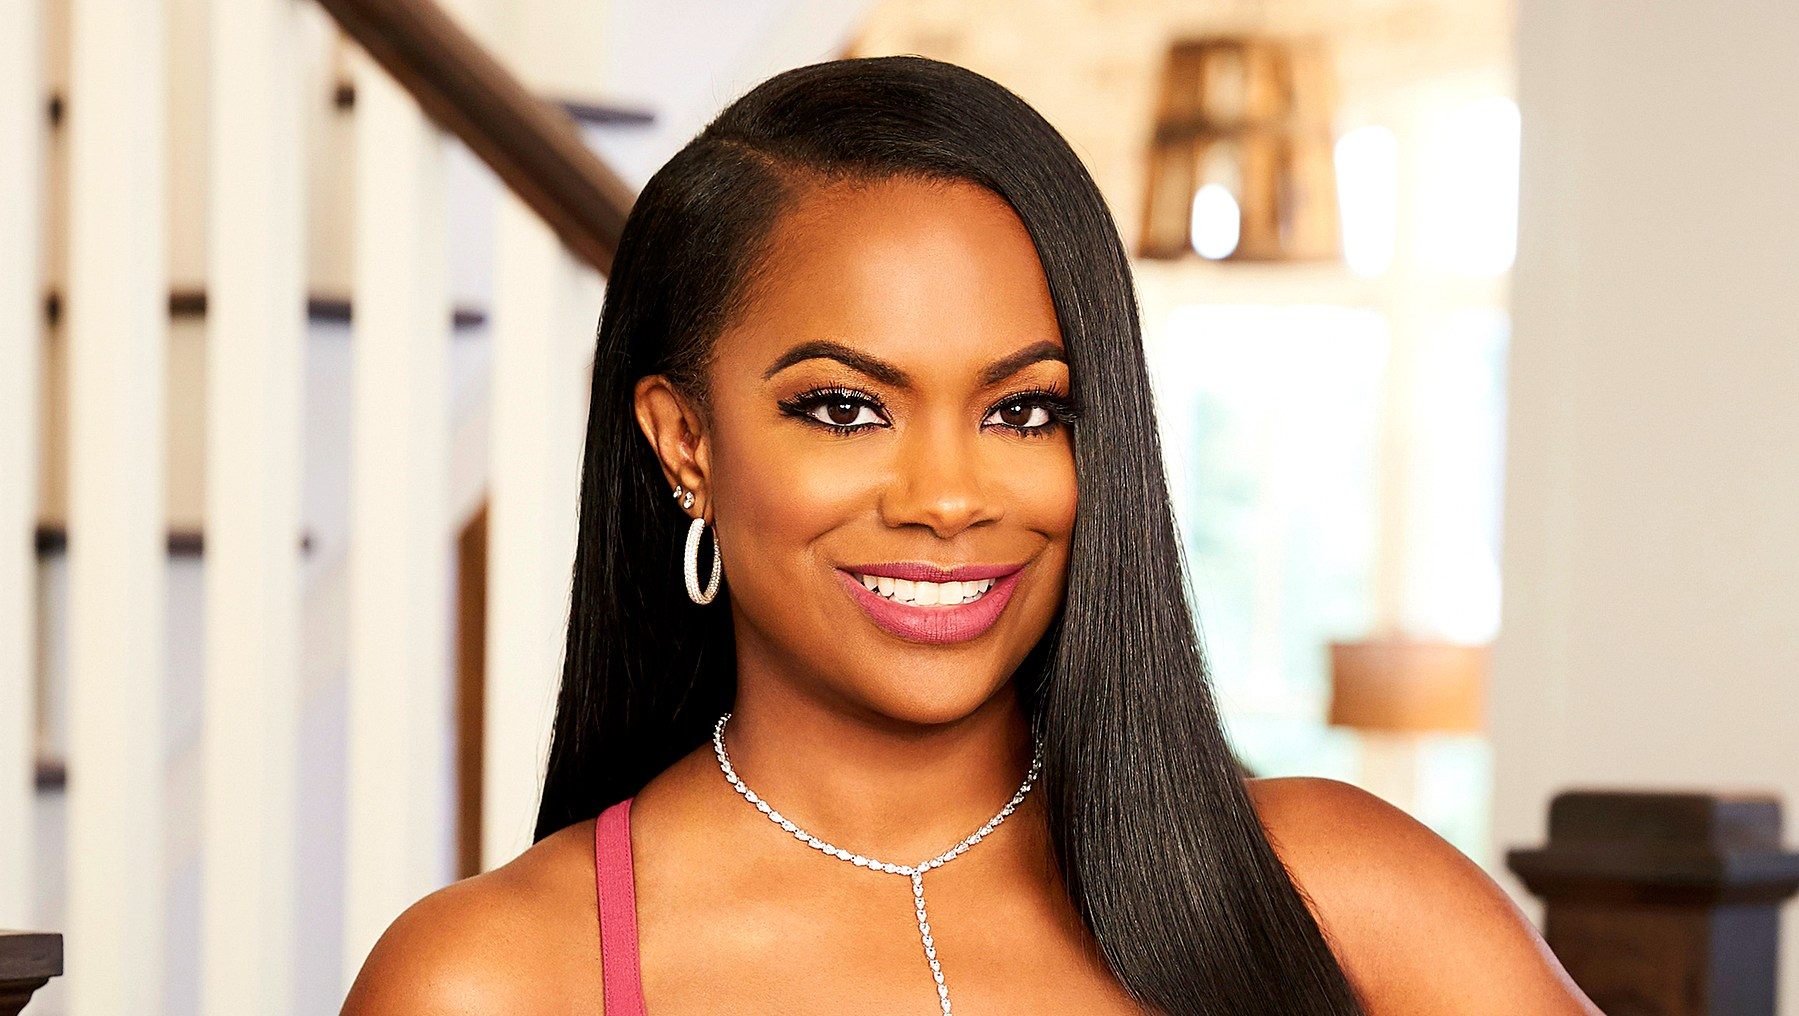 'Real Housewives of Atlanta' star Kandi Burruss